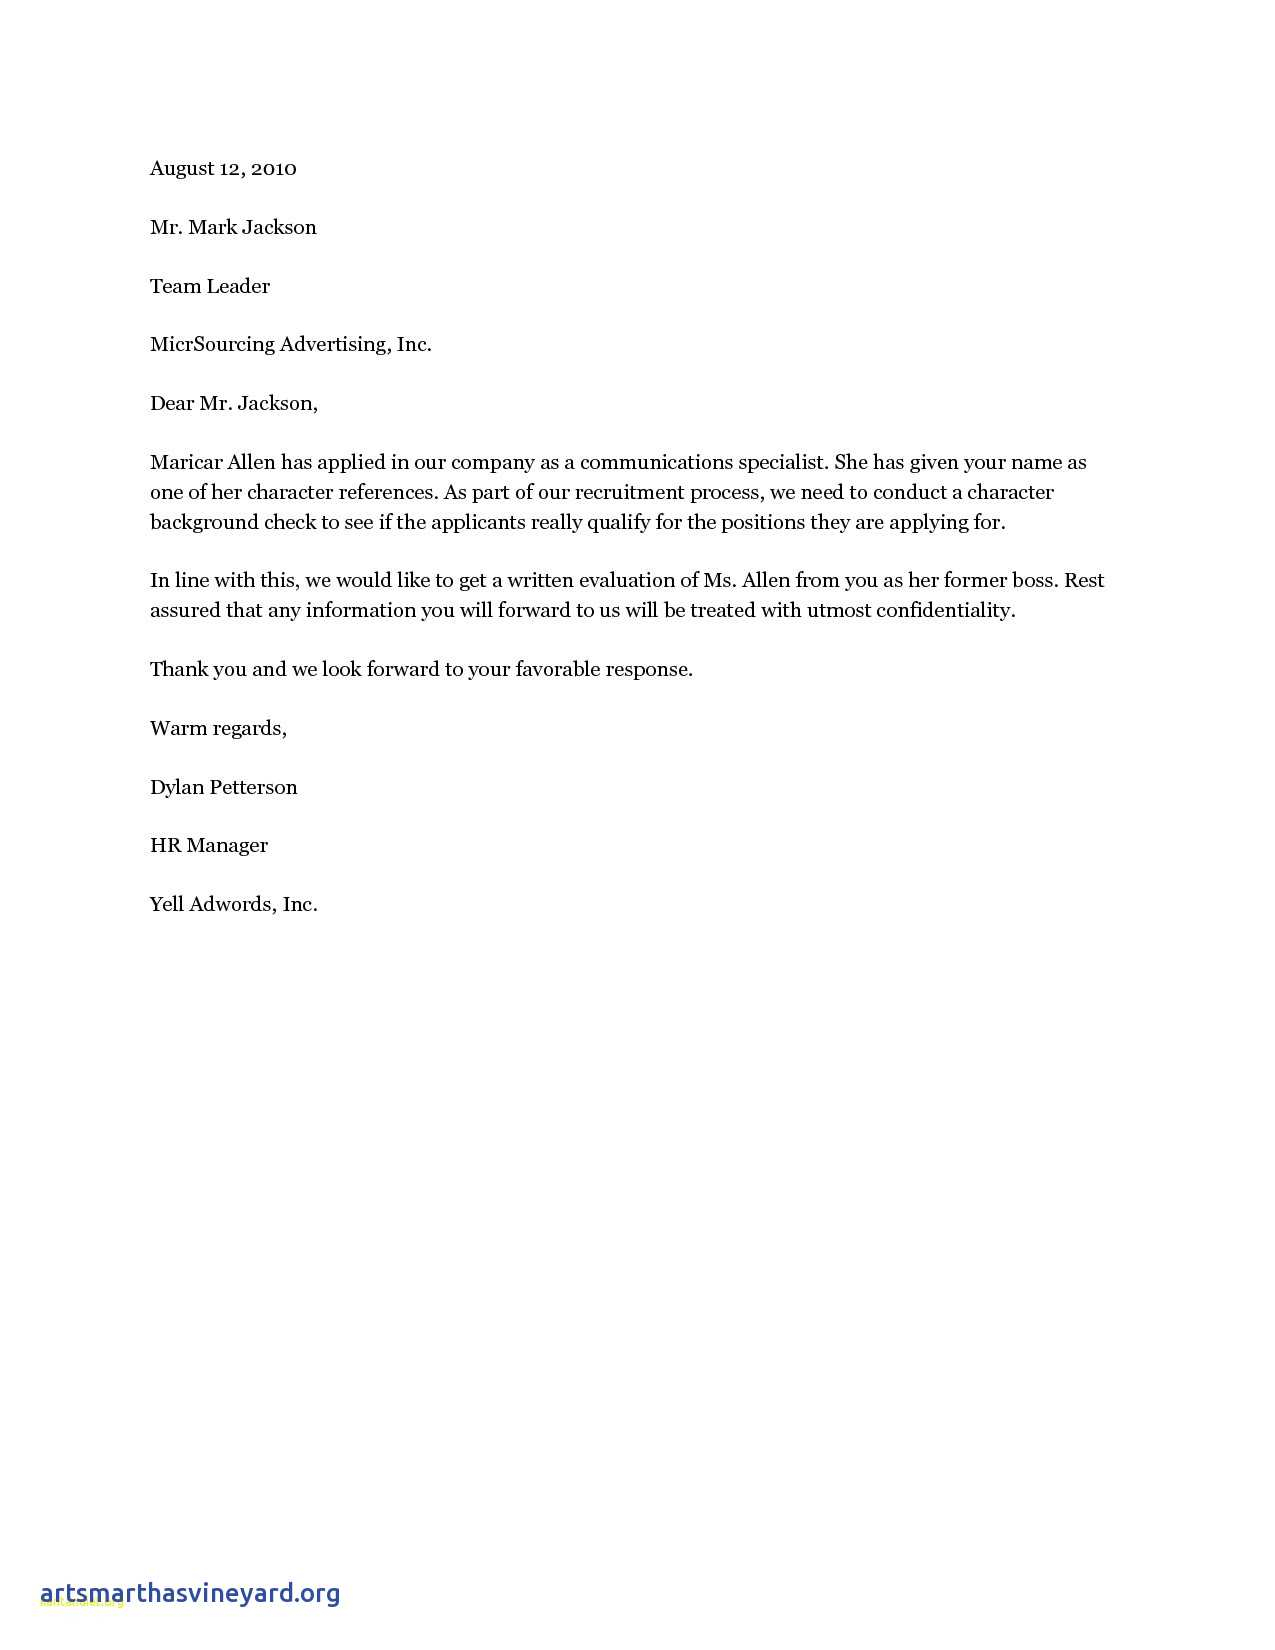 Character Reference Letter Template - Dear Hiring Manager Cover Letter Sample 19 Cover Letter Template